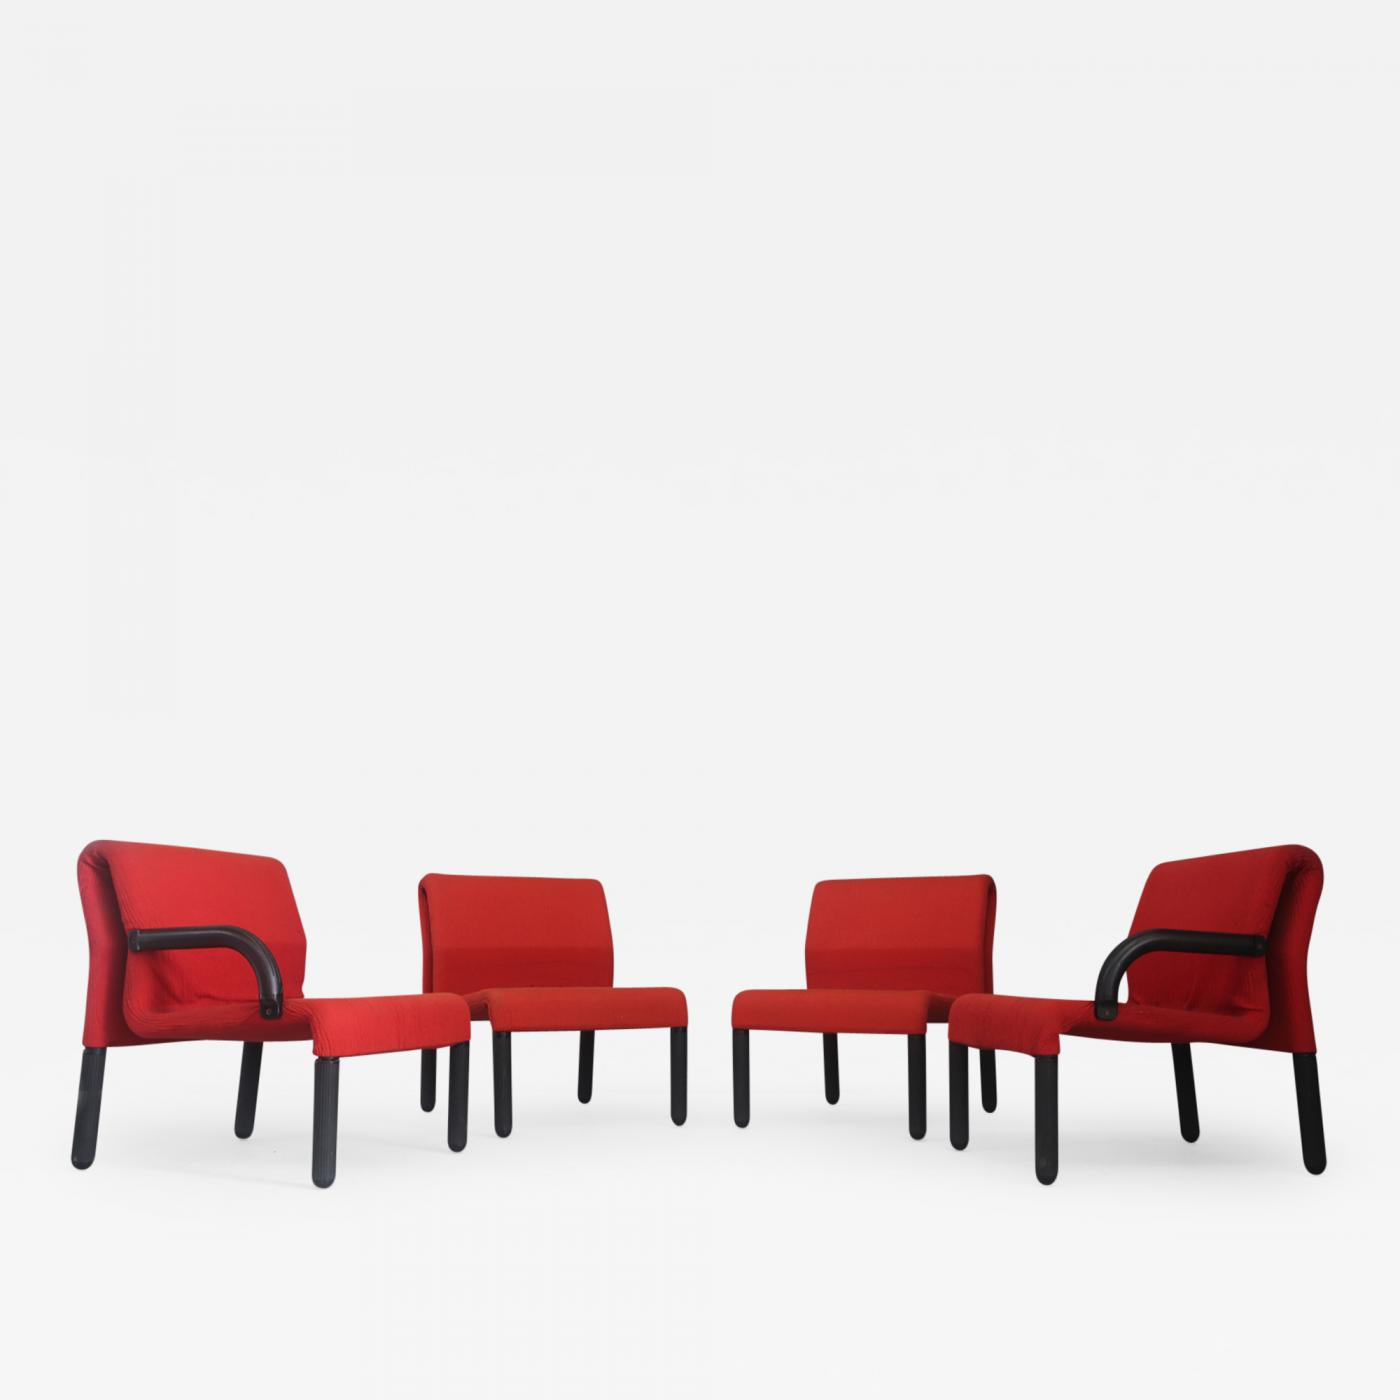 Marvelous Modular Italian Sofa Chairs In Red Fabric And Polyurethane 1980S Bralicious Painted Fabric Chair Ideas Braliciousco